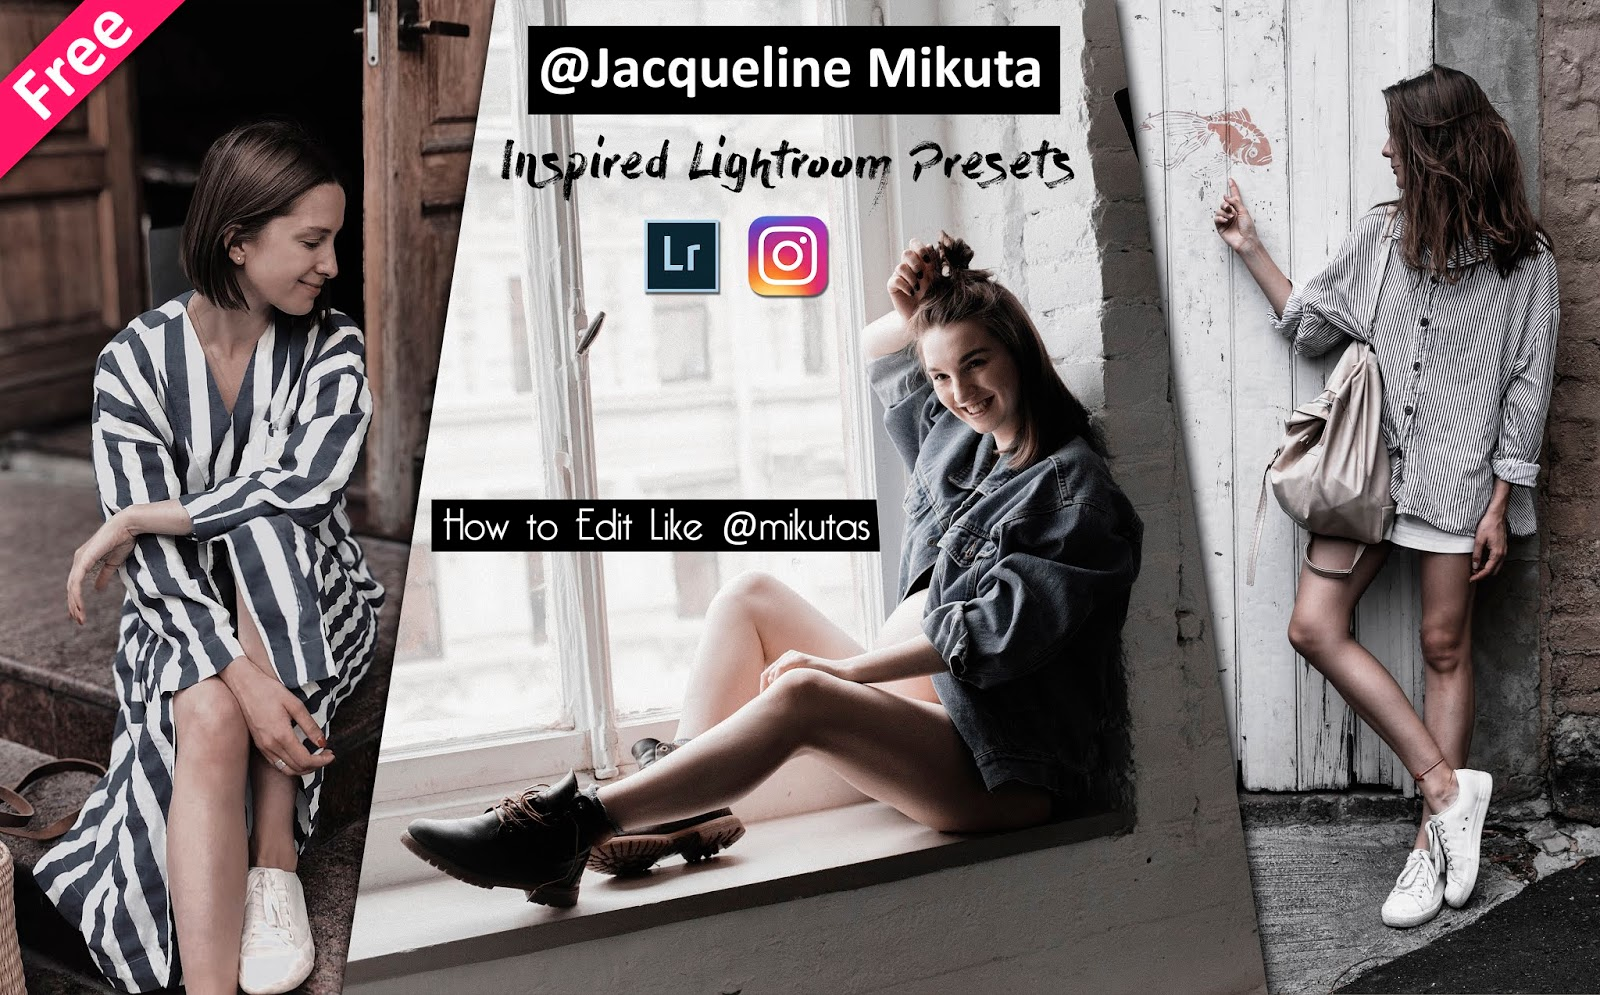 Download Top 7 @Jacqueline Mikuta Inspired Lightroom Presets For Free | How to Edit Like @Mikutas